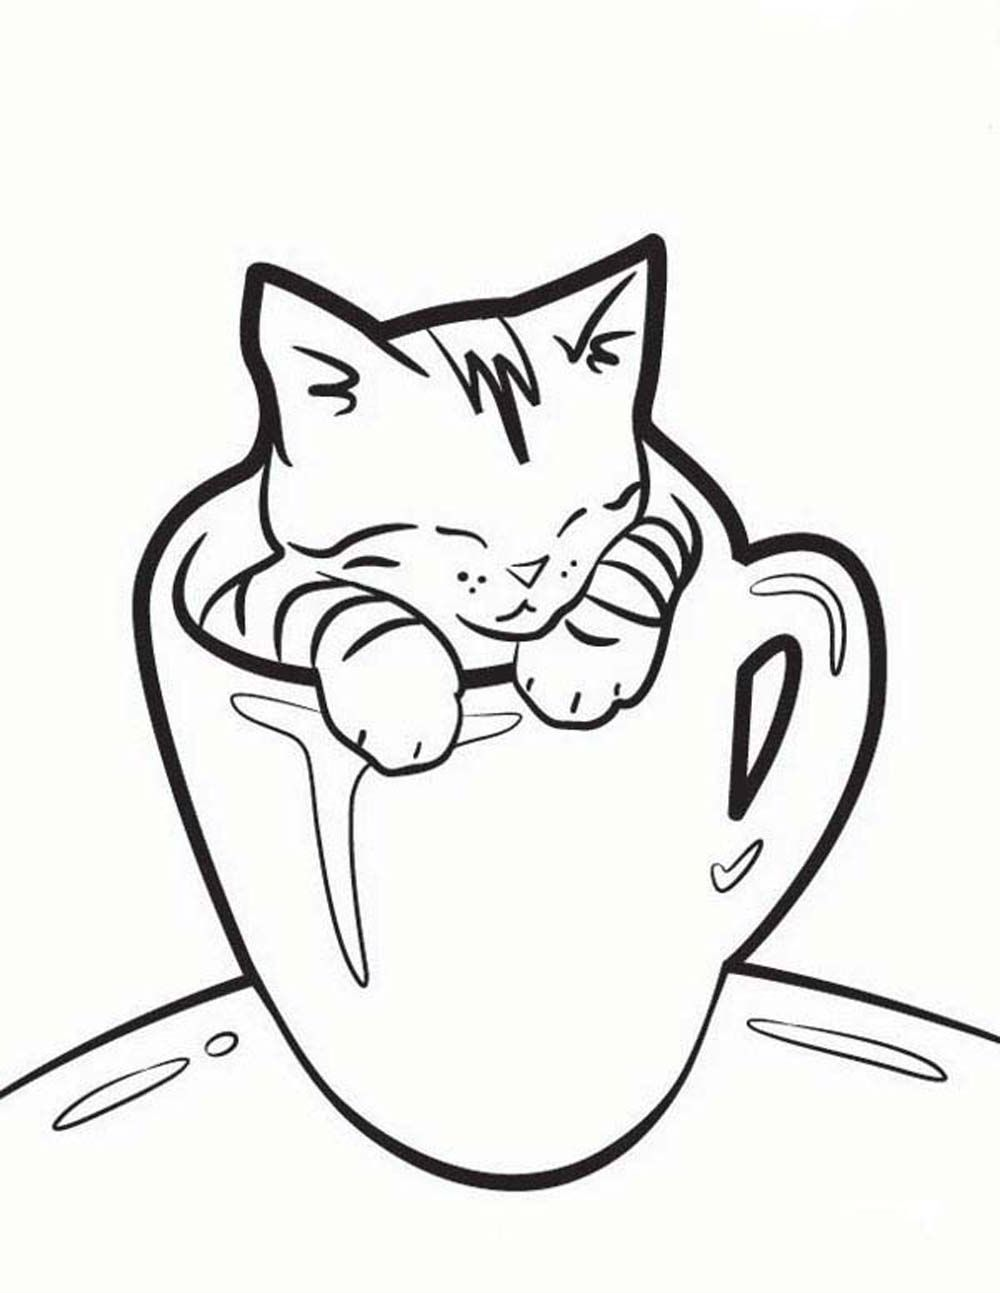 Cat-coloring-pages-printable.jpg (1000×1293)